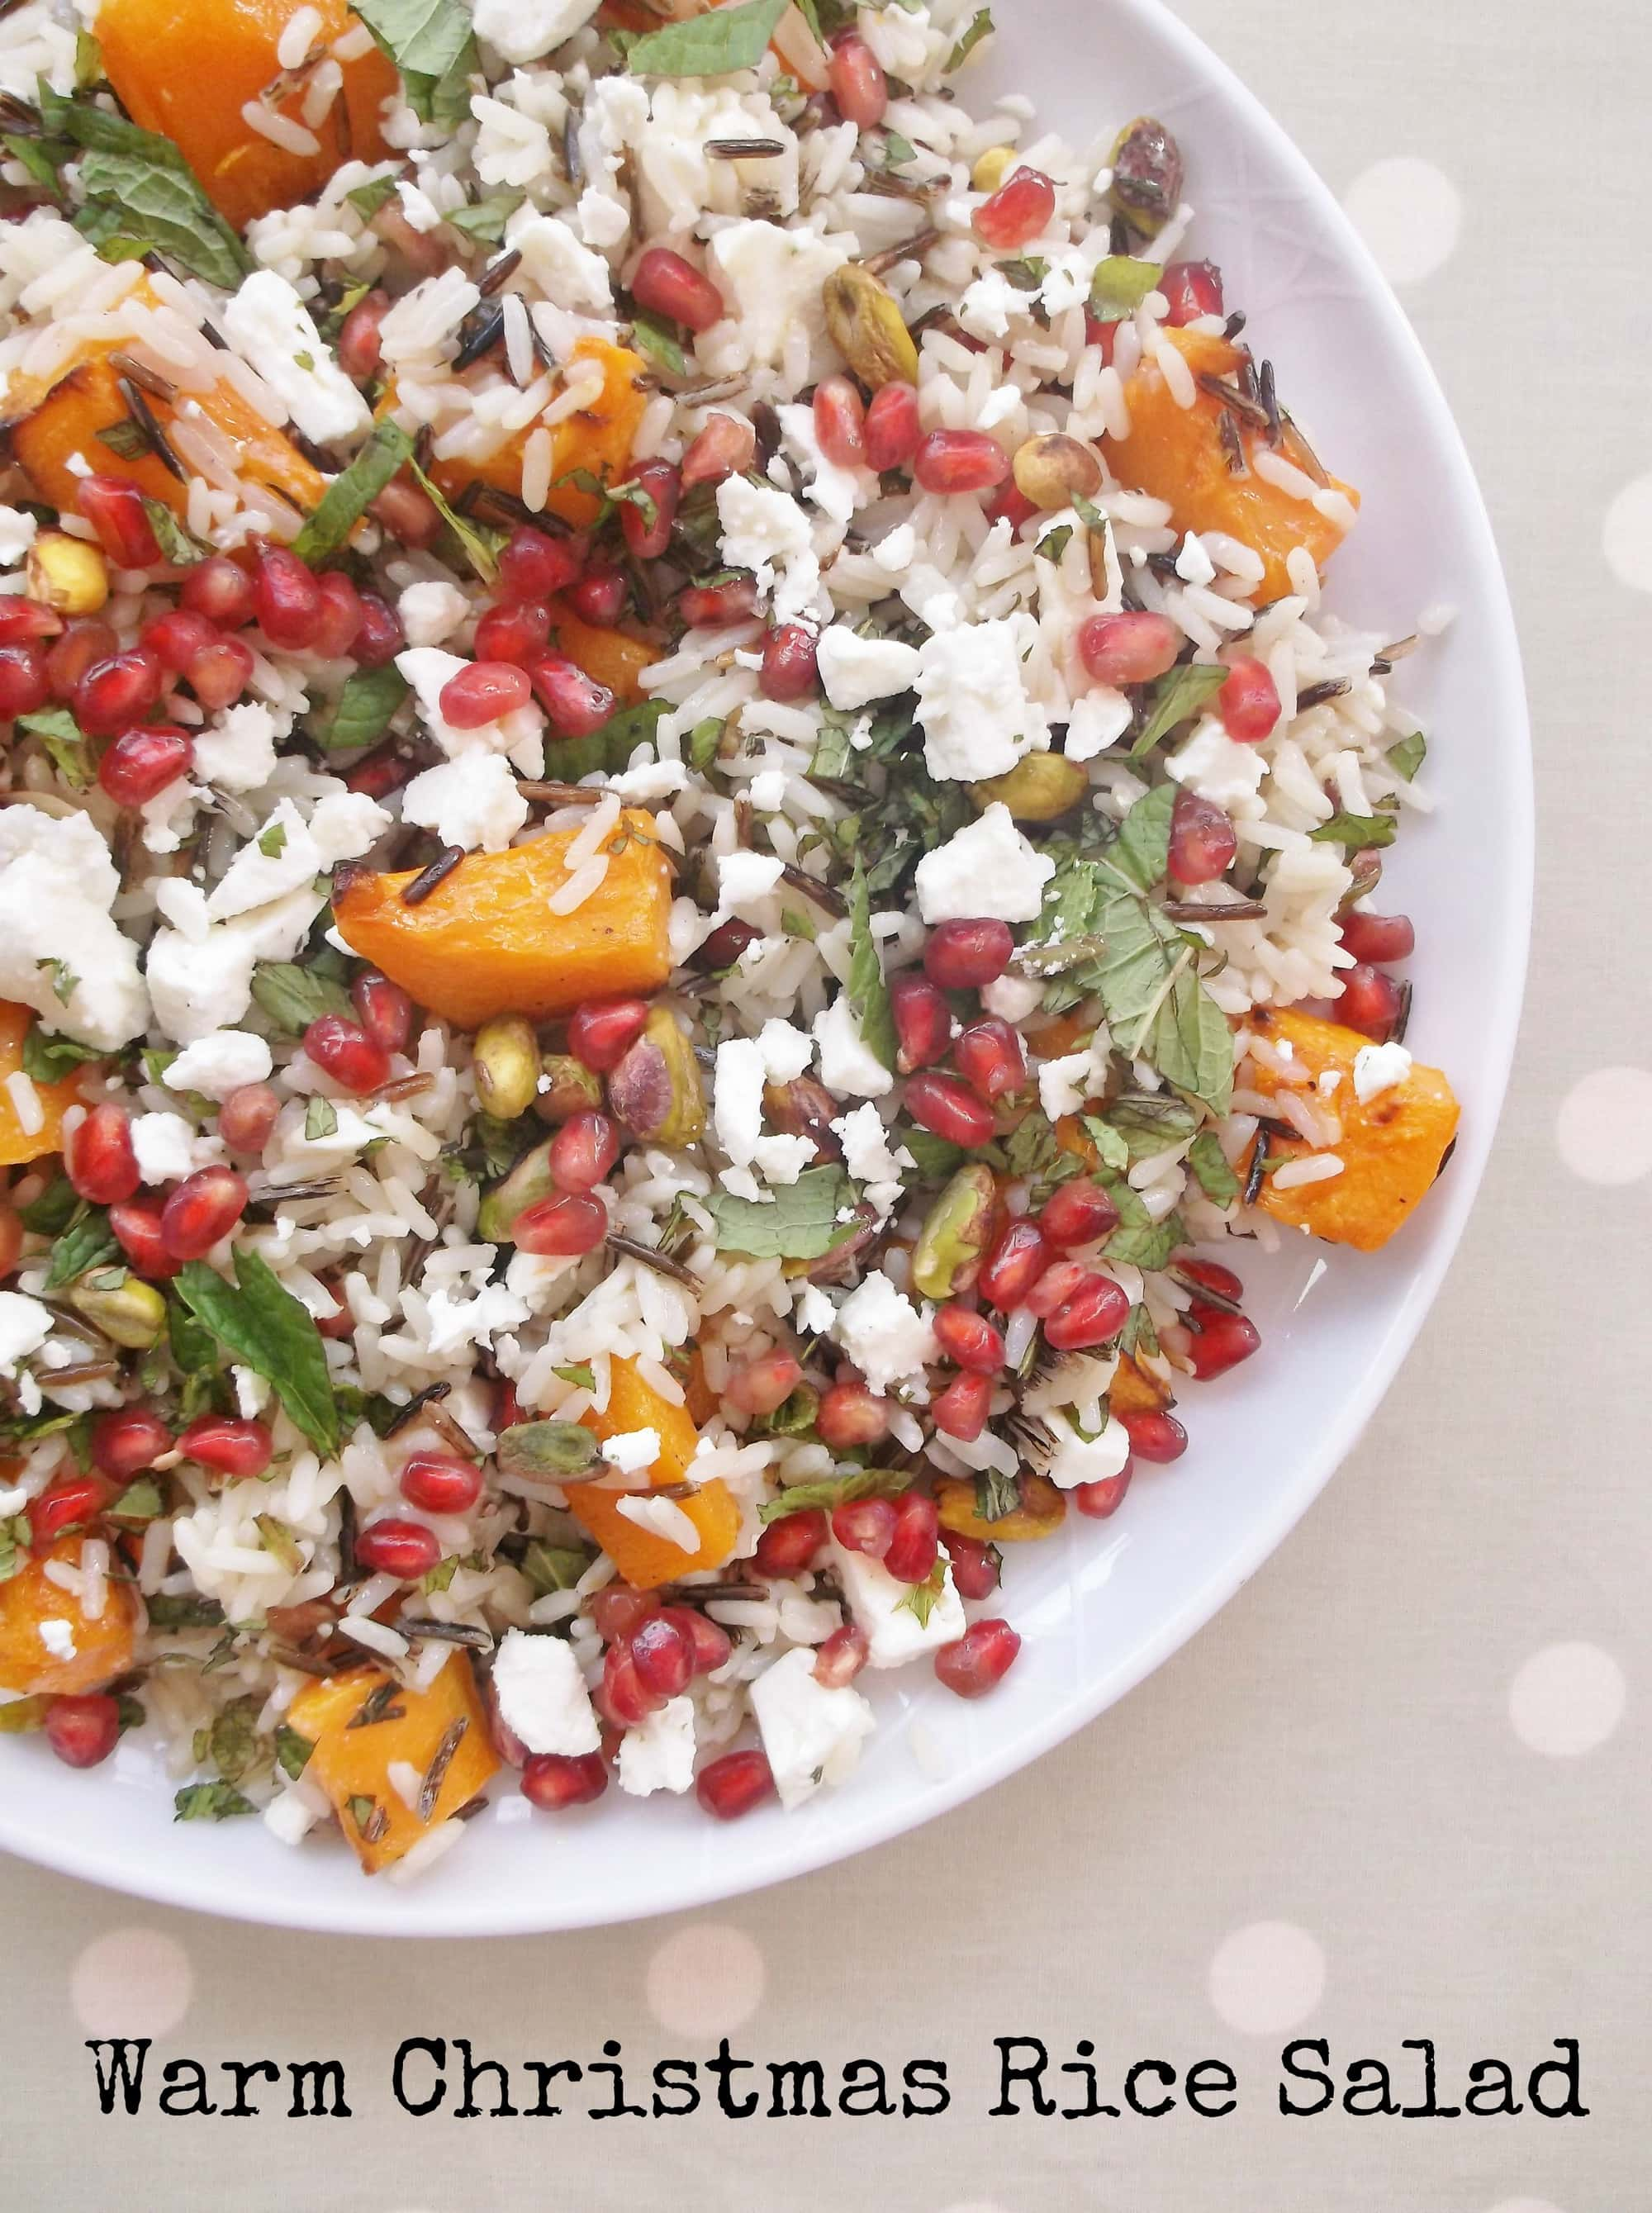 Warm Christmas Rice Salad with Butternut Squash and Pomegranate Seeds